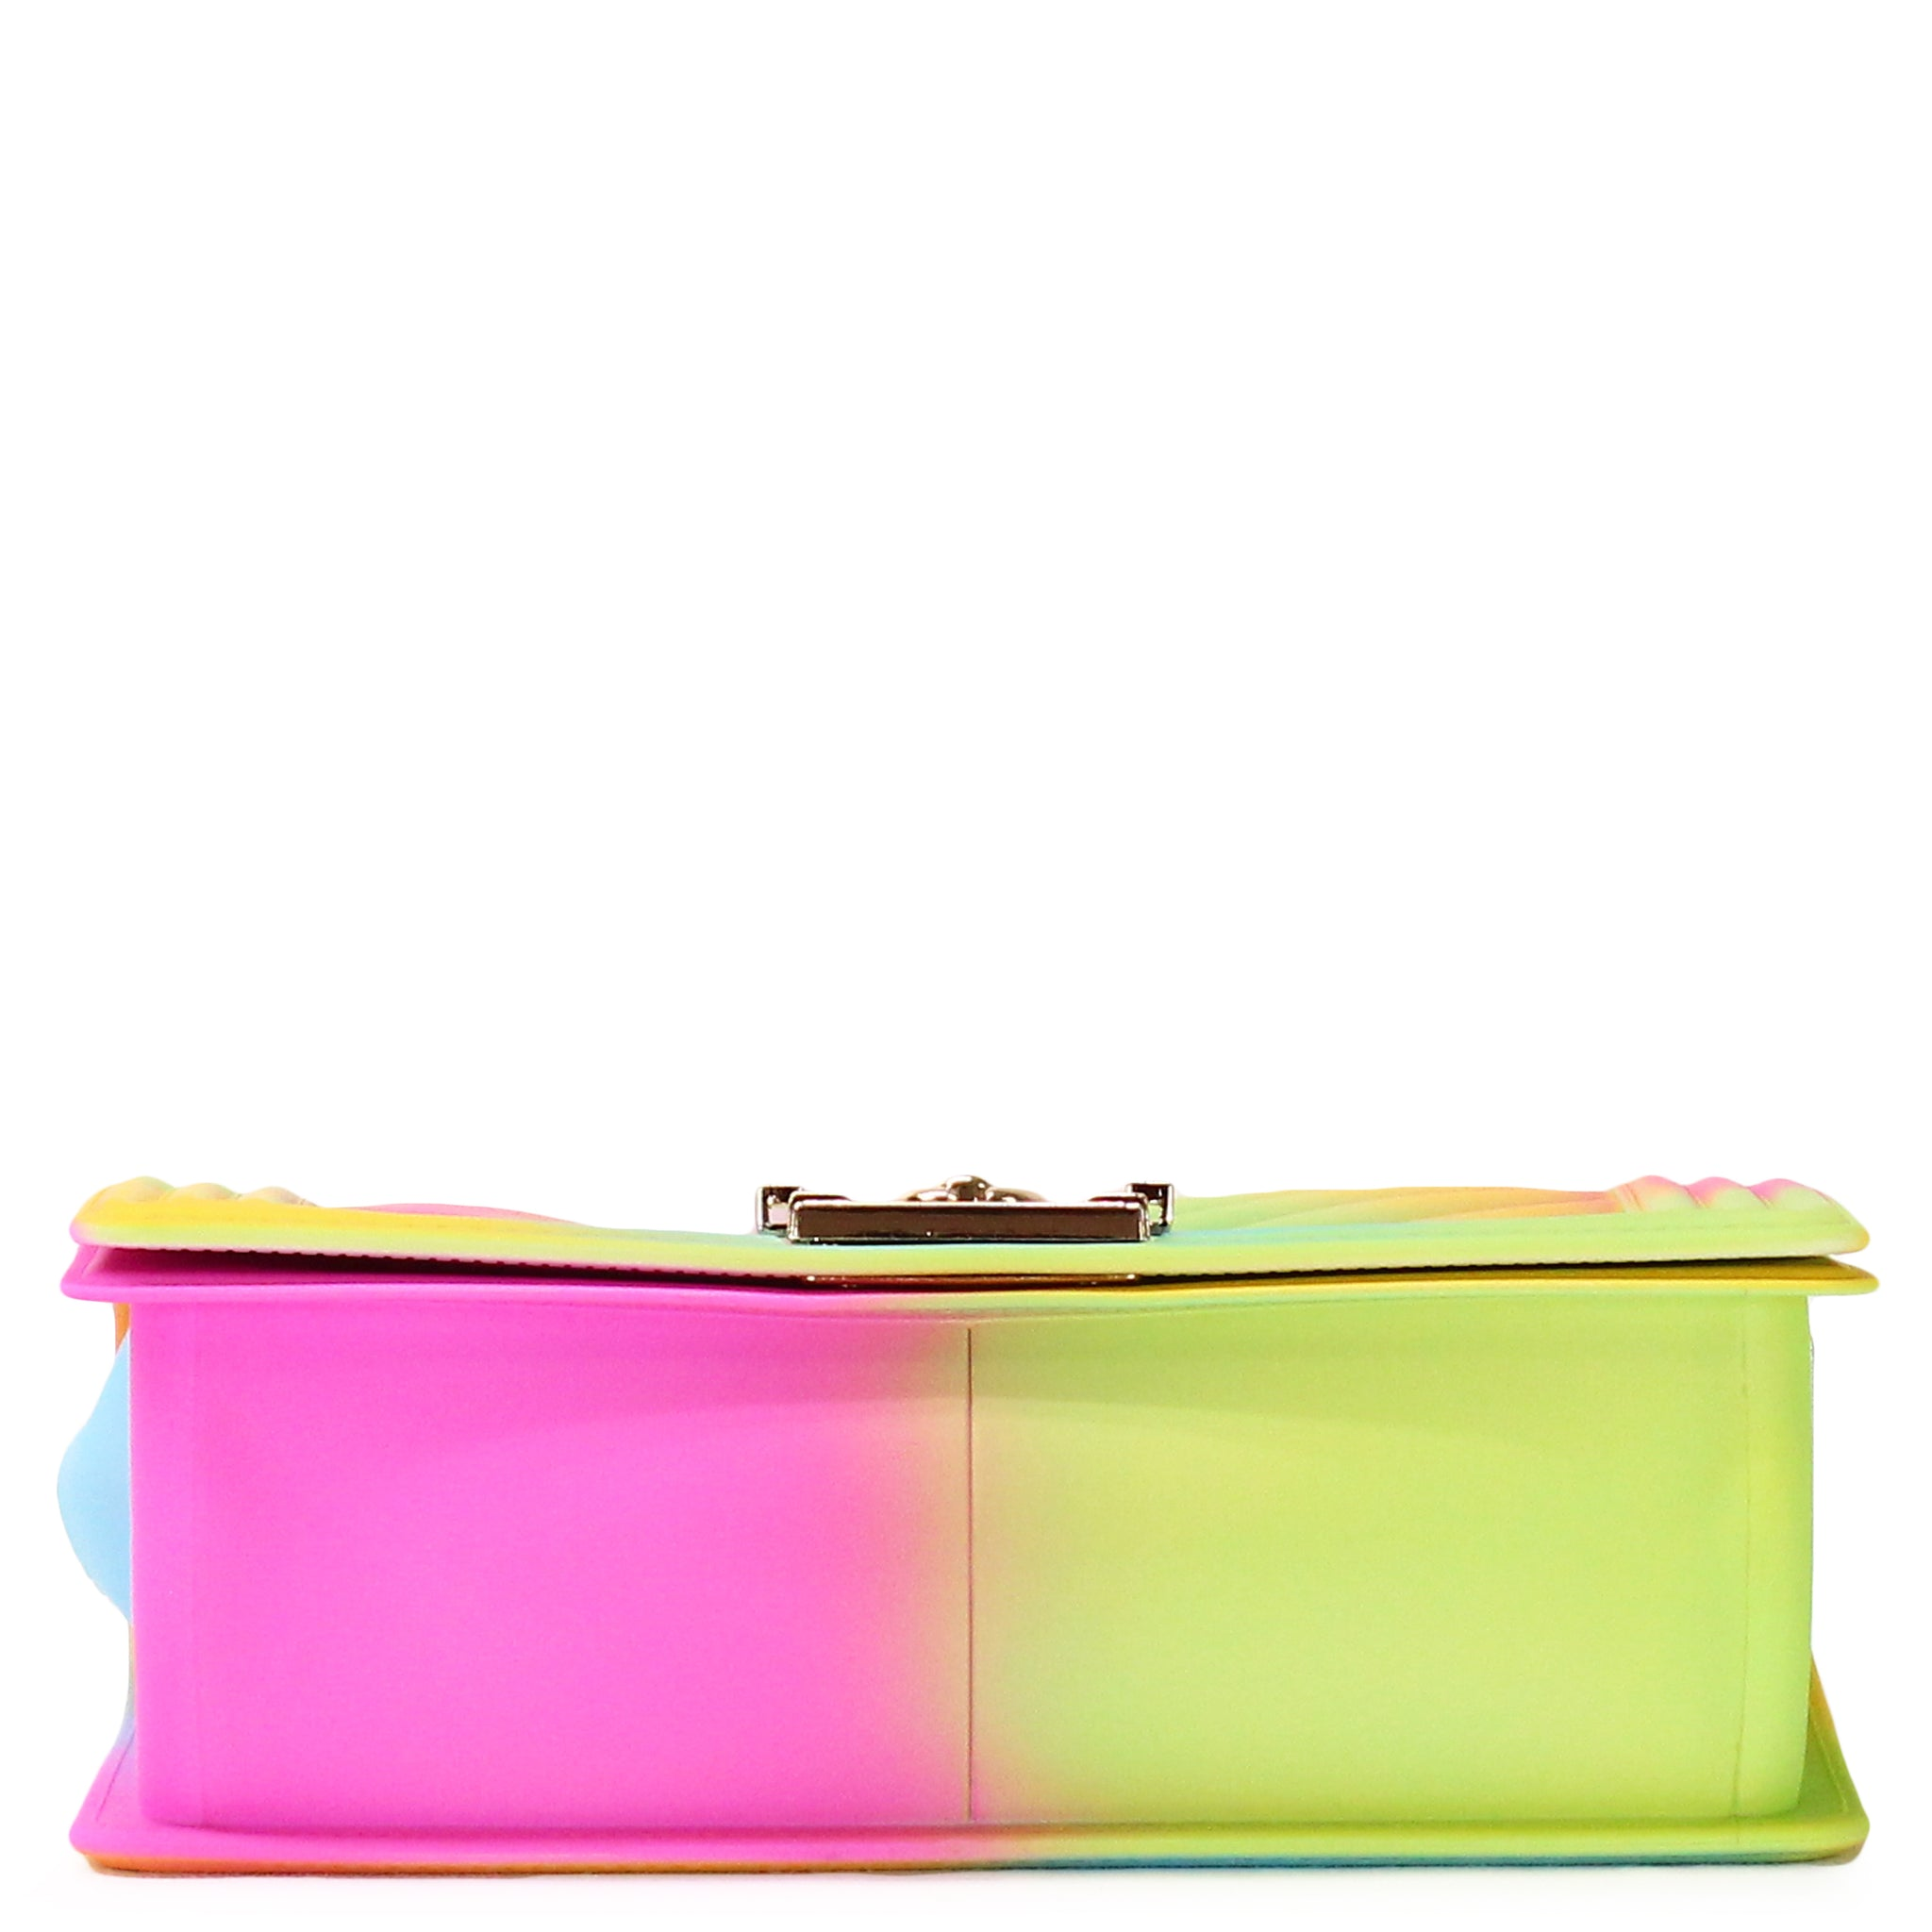 EMBOSSED RAINBOW SILICONE SHOULDER BAG - Jenuine Handbags